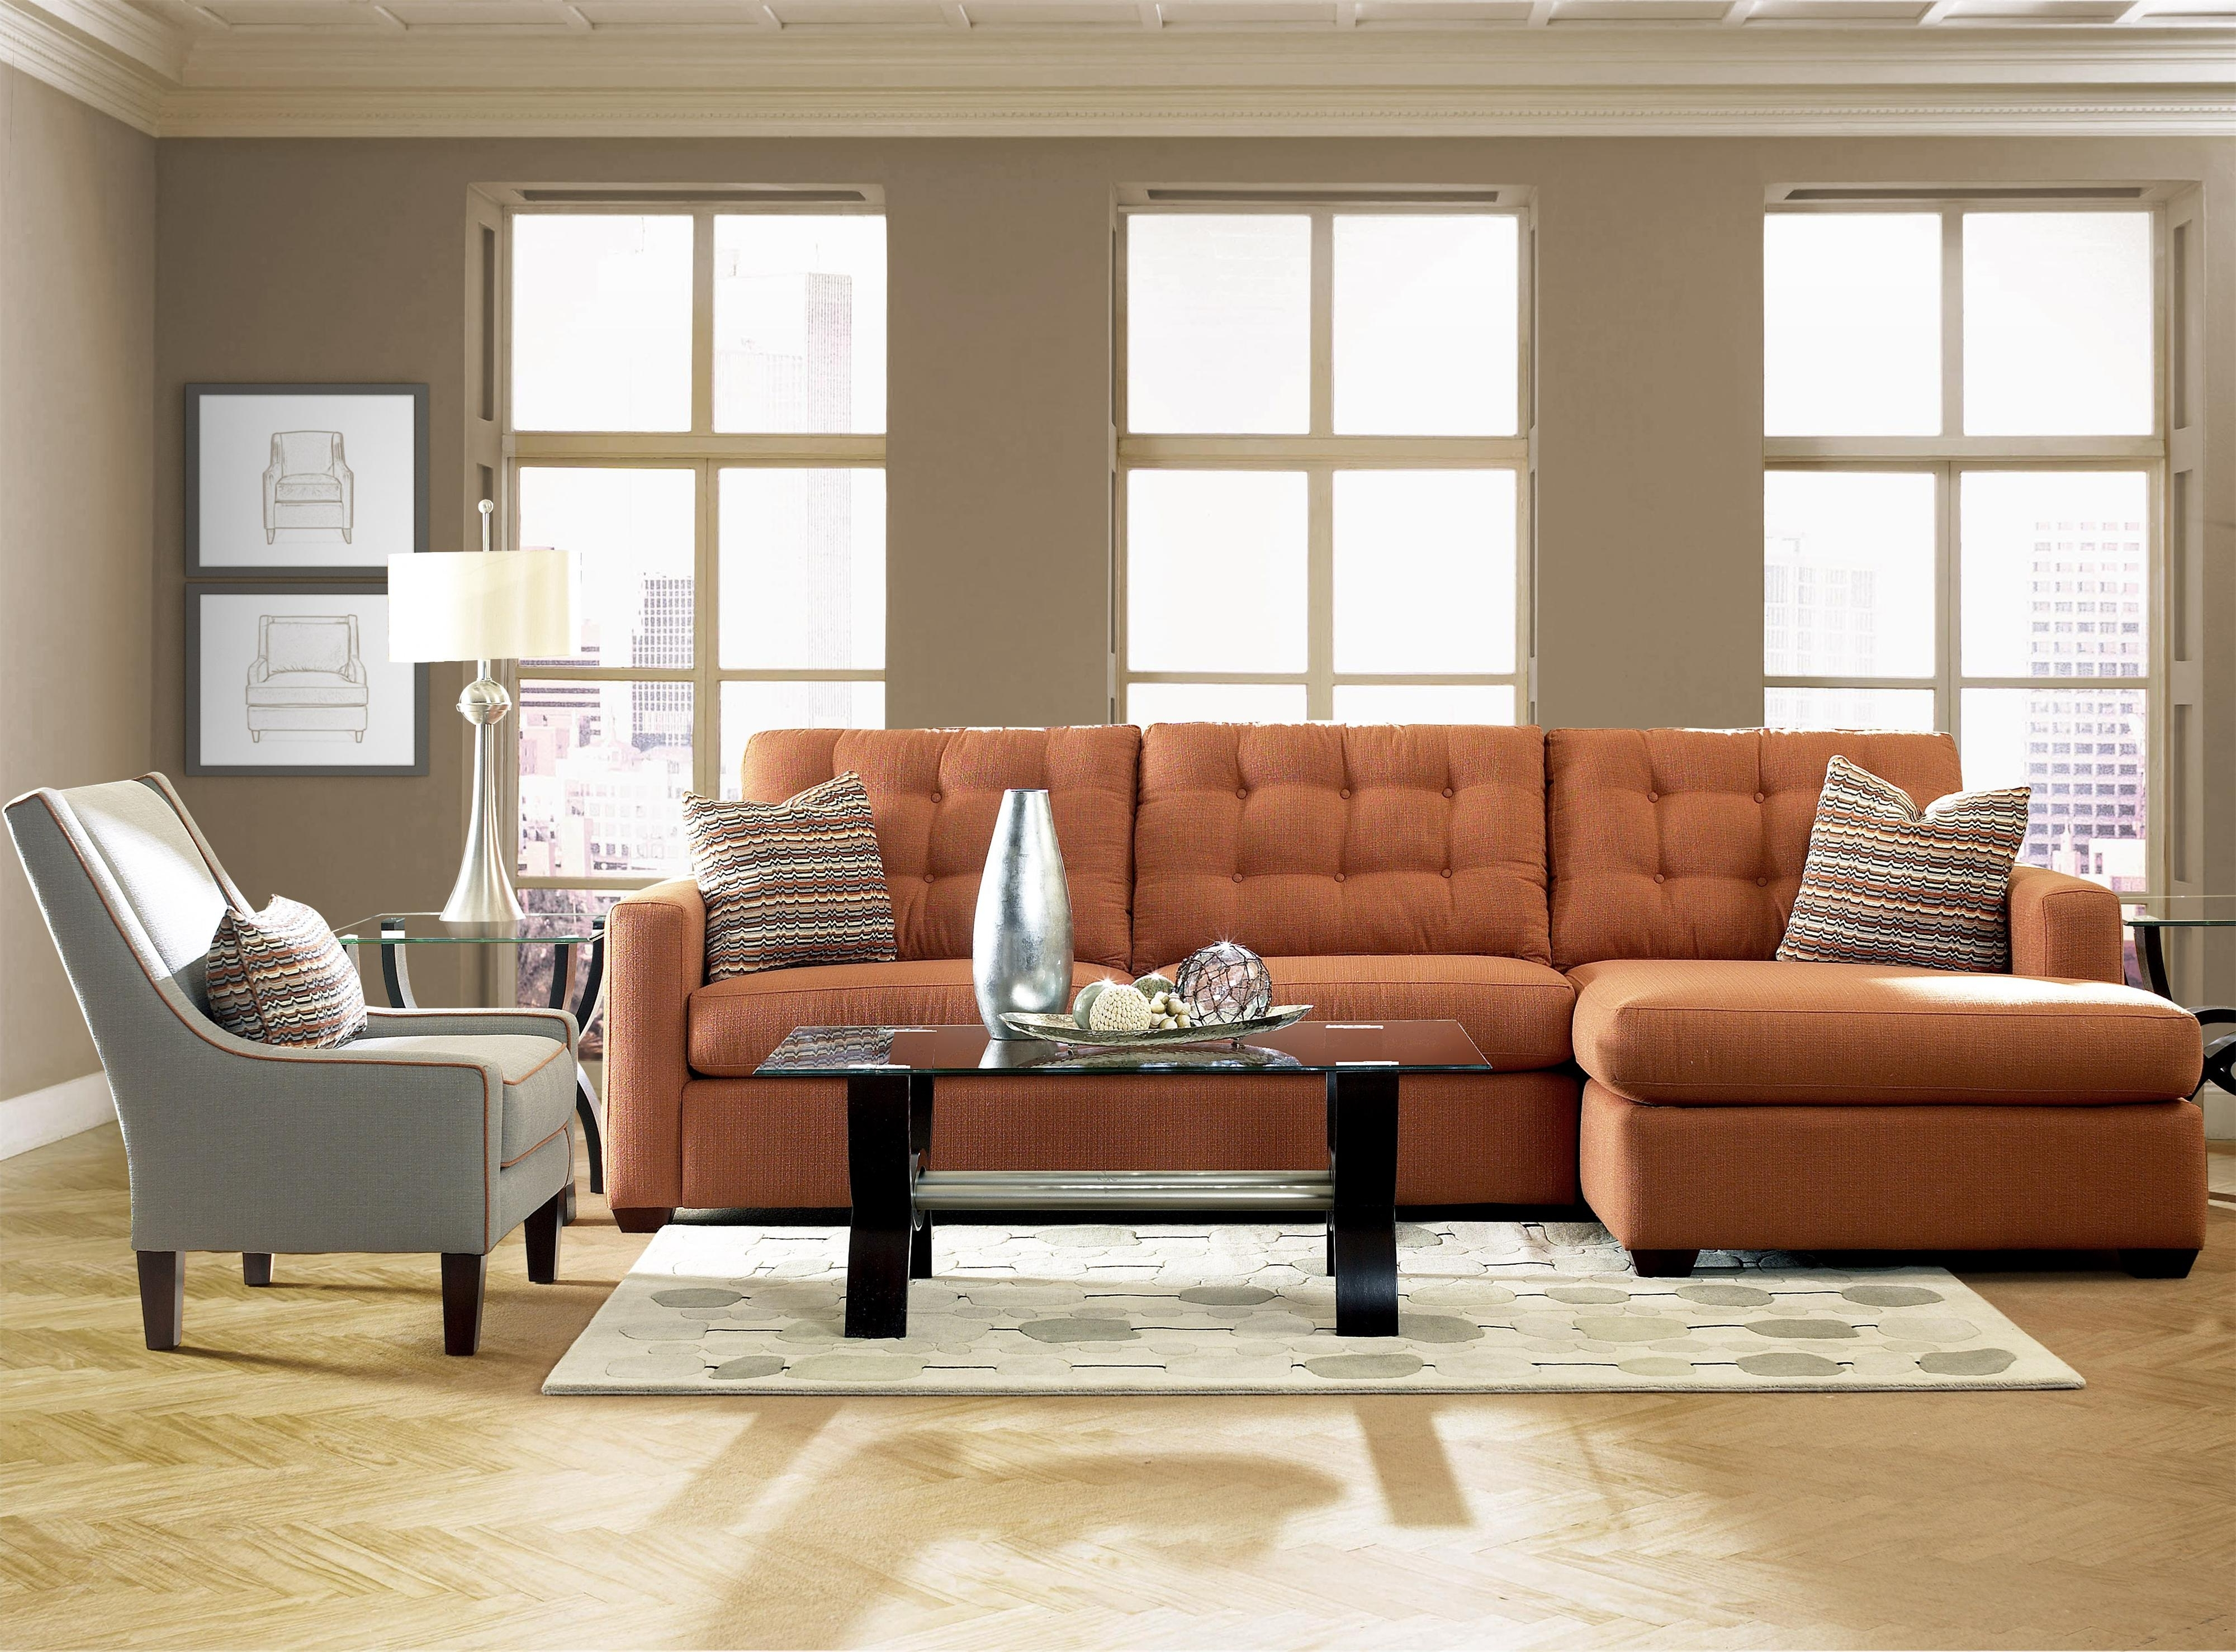 Chaise Lounge Chairs Living Room Furniture • Lounge Chairs Ideas Pertaining To Famous Chaise Chairs For Living Room (View 3 of 15)